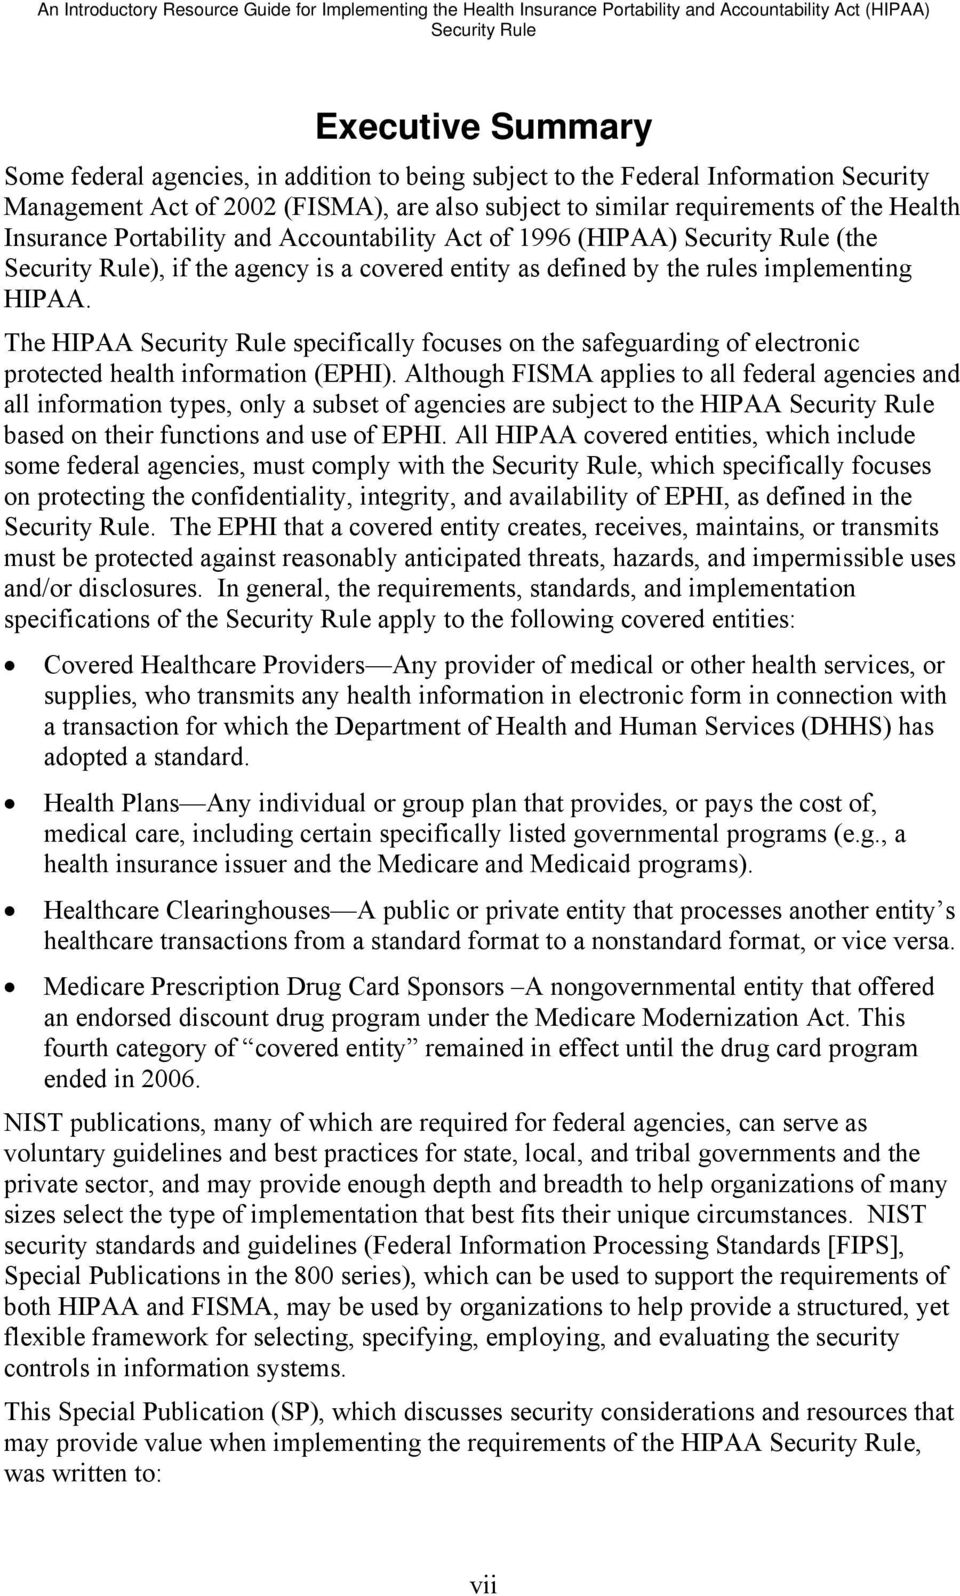 Security Rule), if the agency is a covered entity as defined by the rules implementing HIPAA.